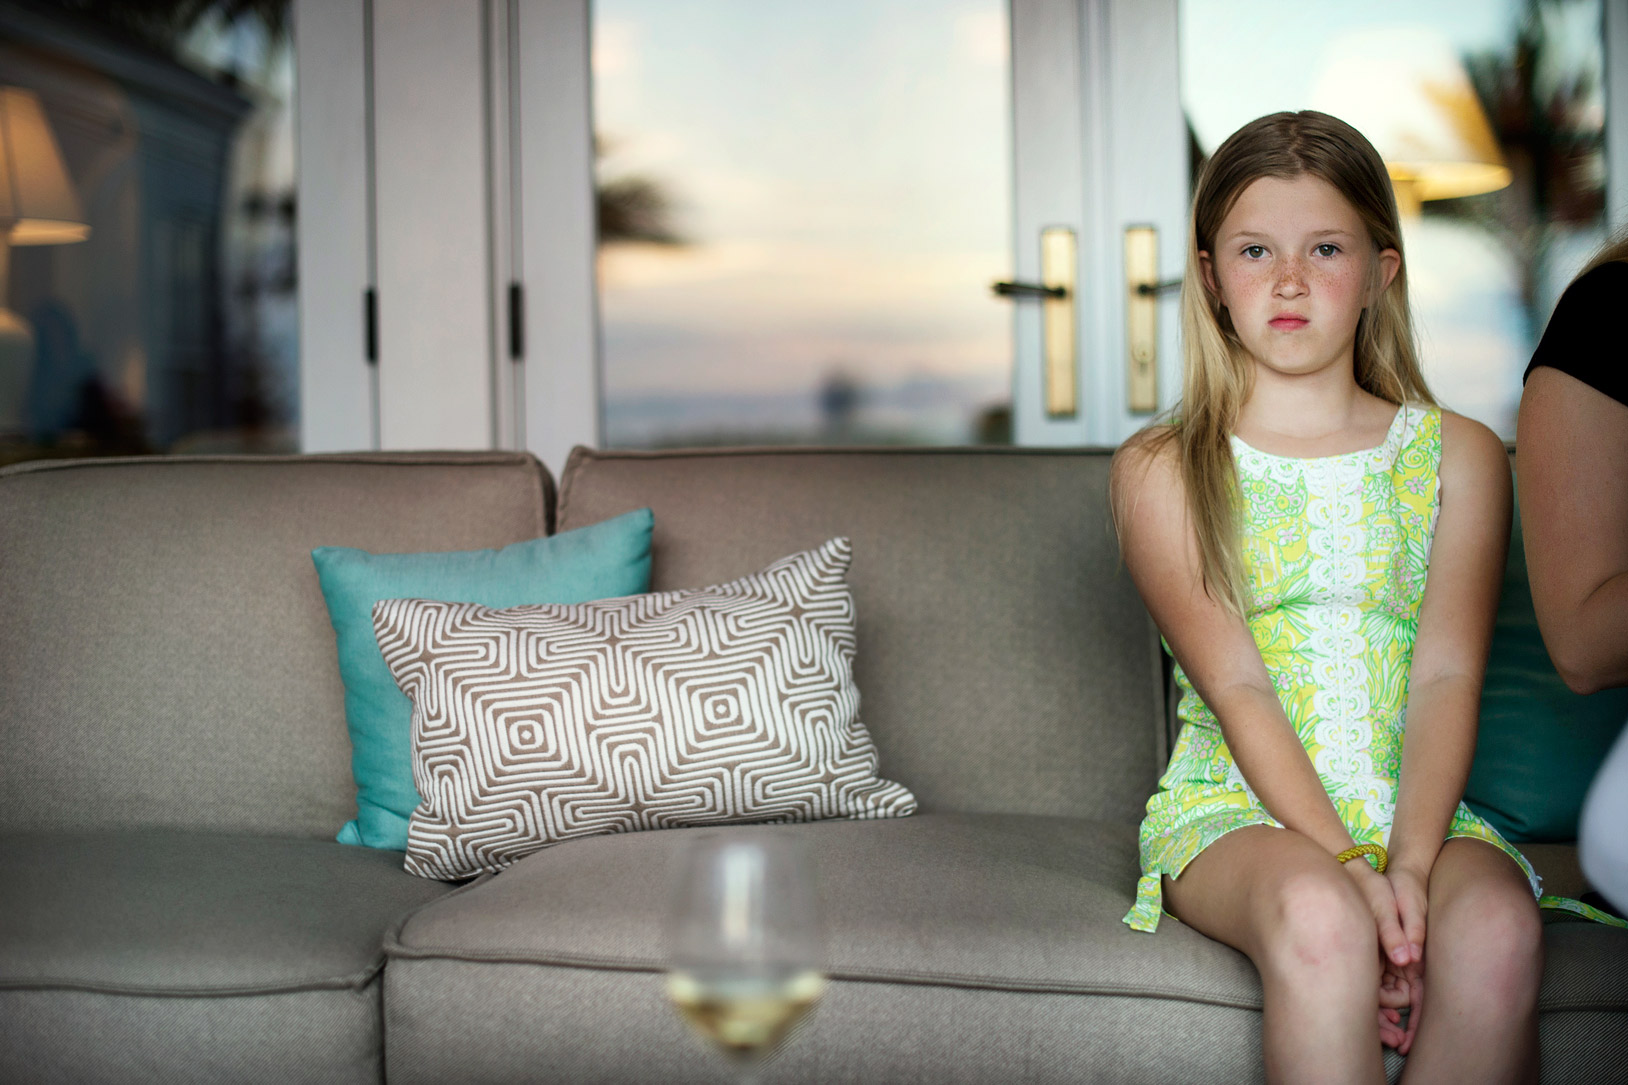 girl looking polite on sofa